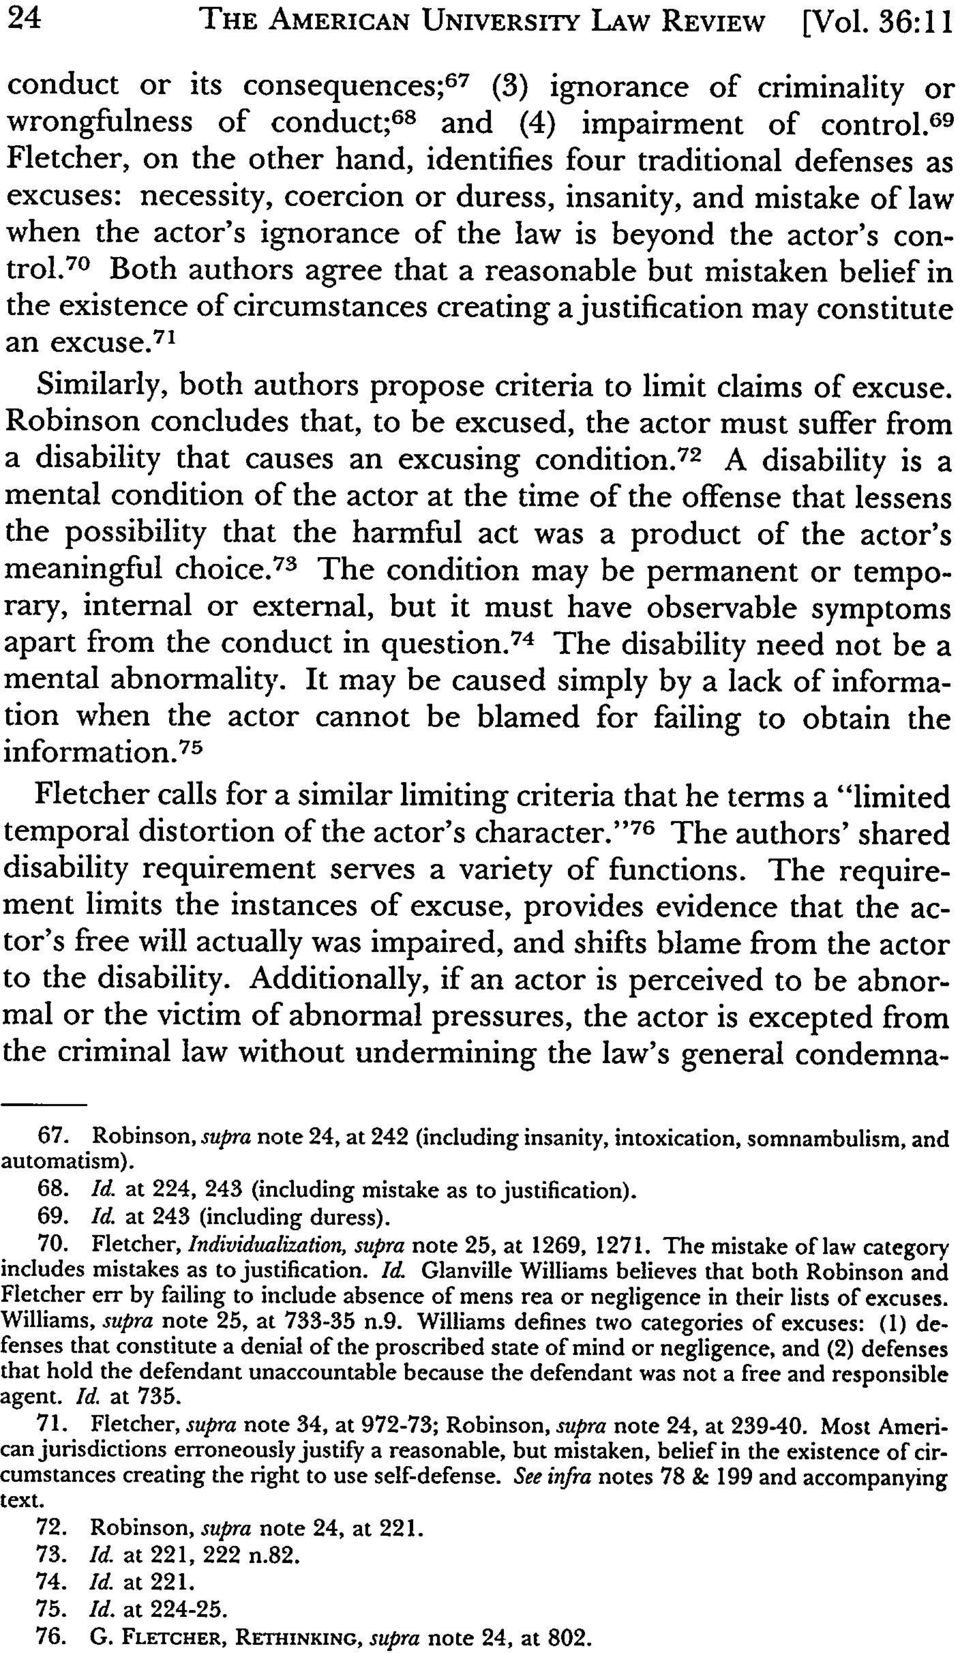 actor's control. 70 Both authors agree that a reasonable but mistaken belief in the existence of circumstances creating a justification may constitute an excuse.